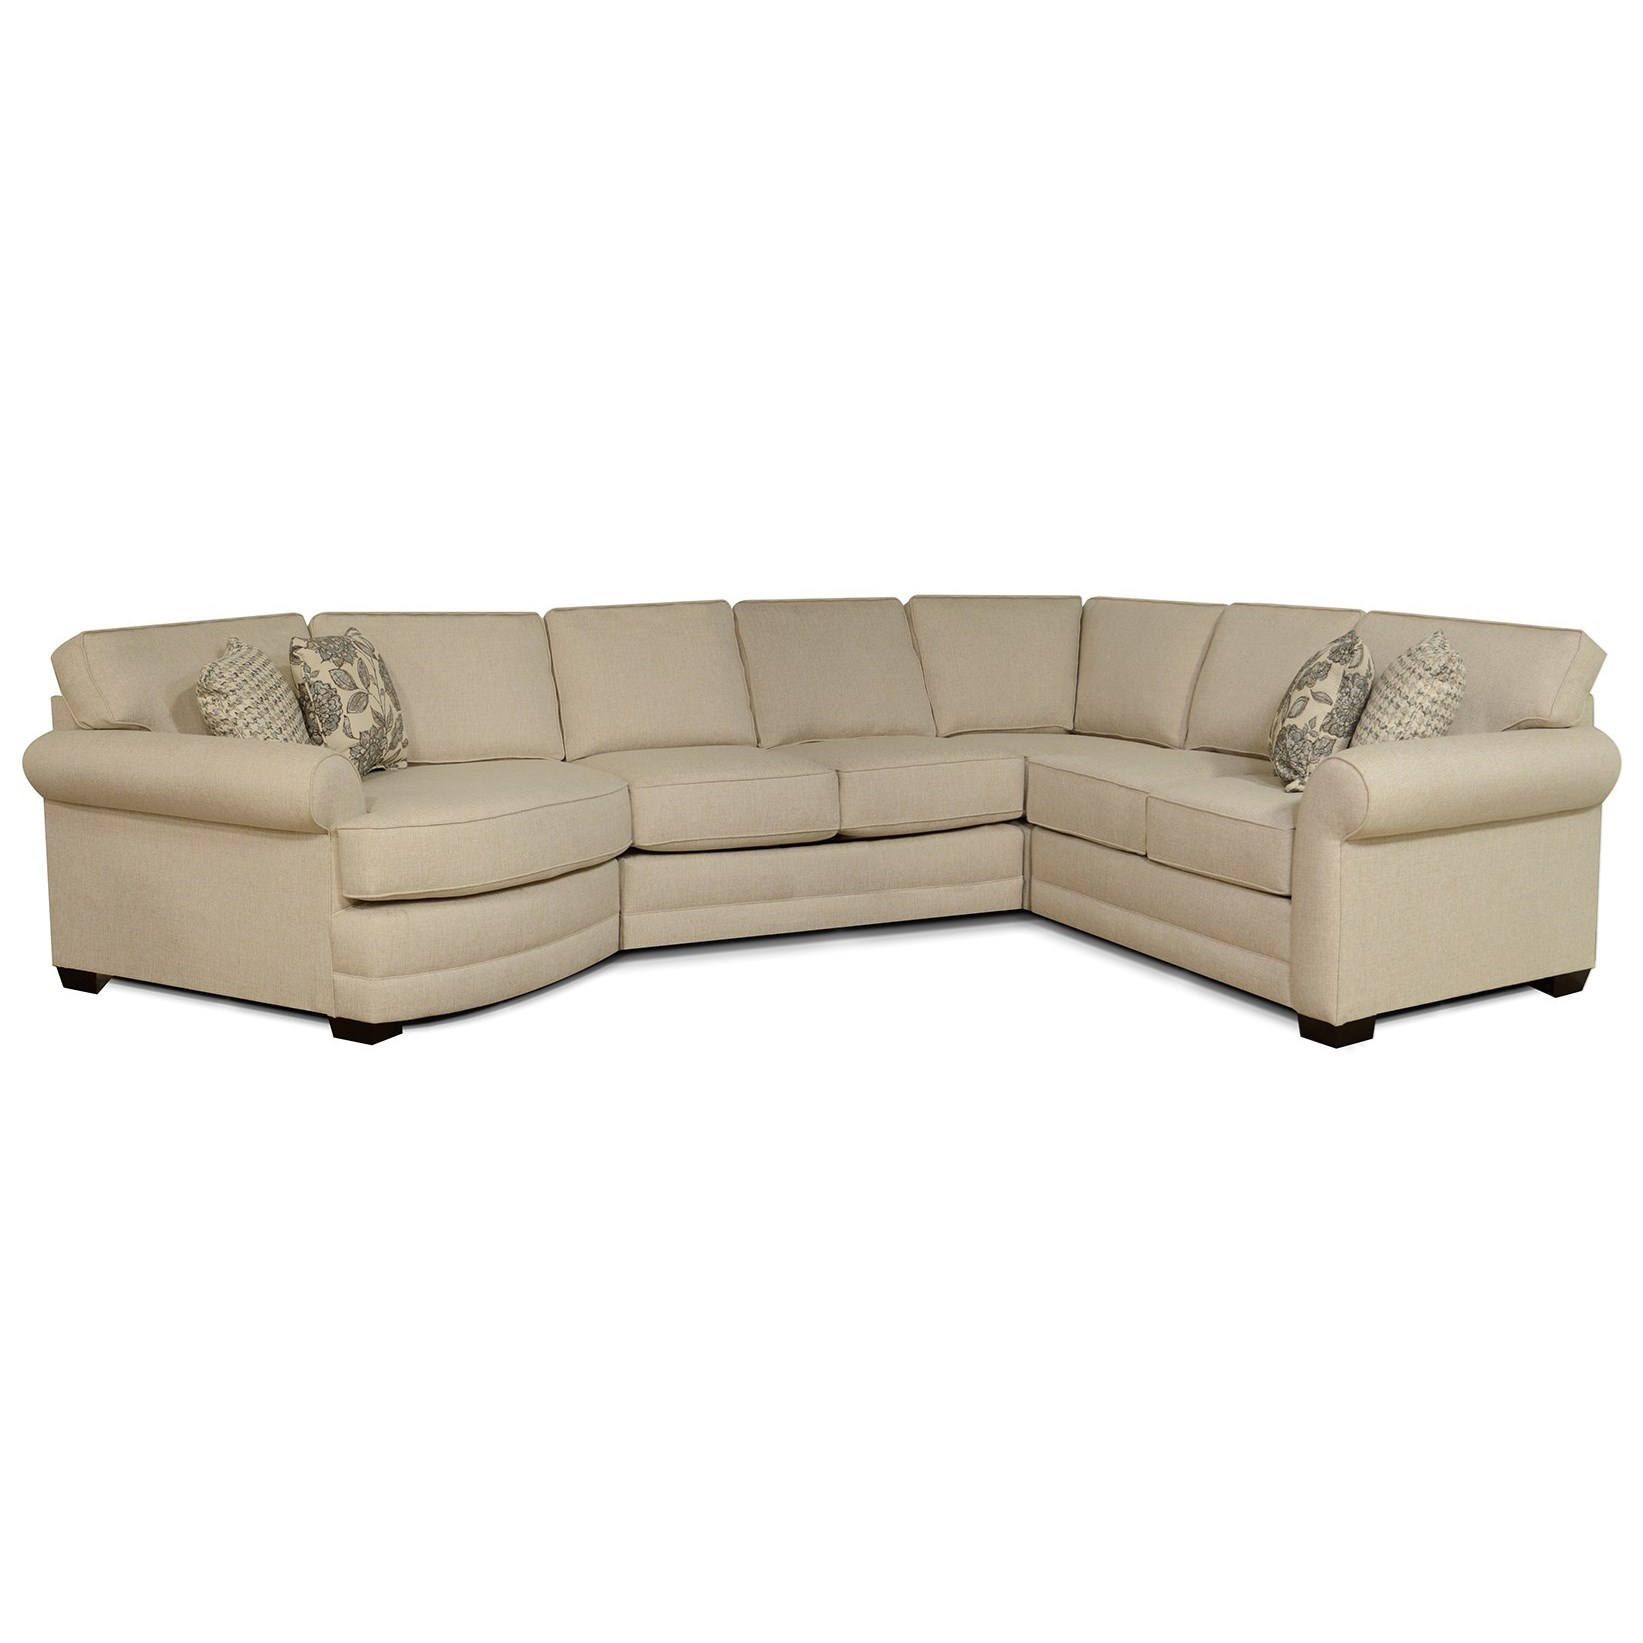 England Brantley 5630 94 43 22 27 Grande Linen Casual 4 Piece Sectional With Cuddler Furniture And Appliancemart Sectional Sofas